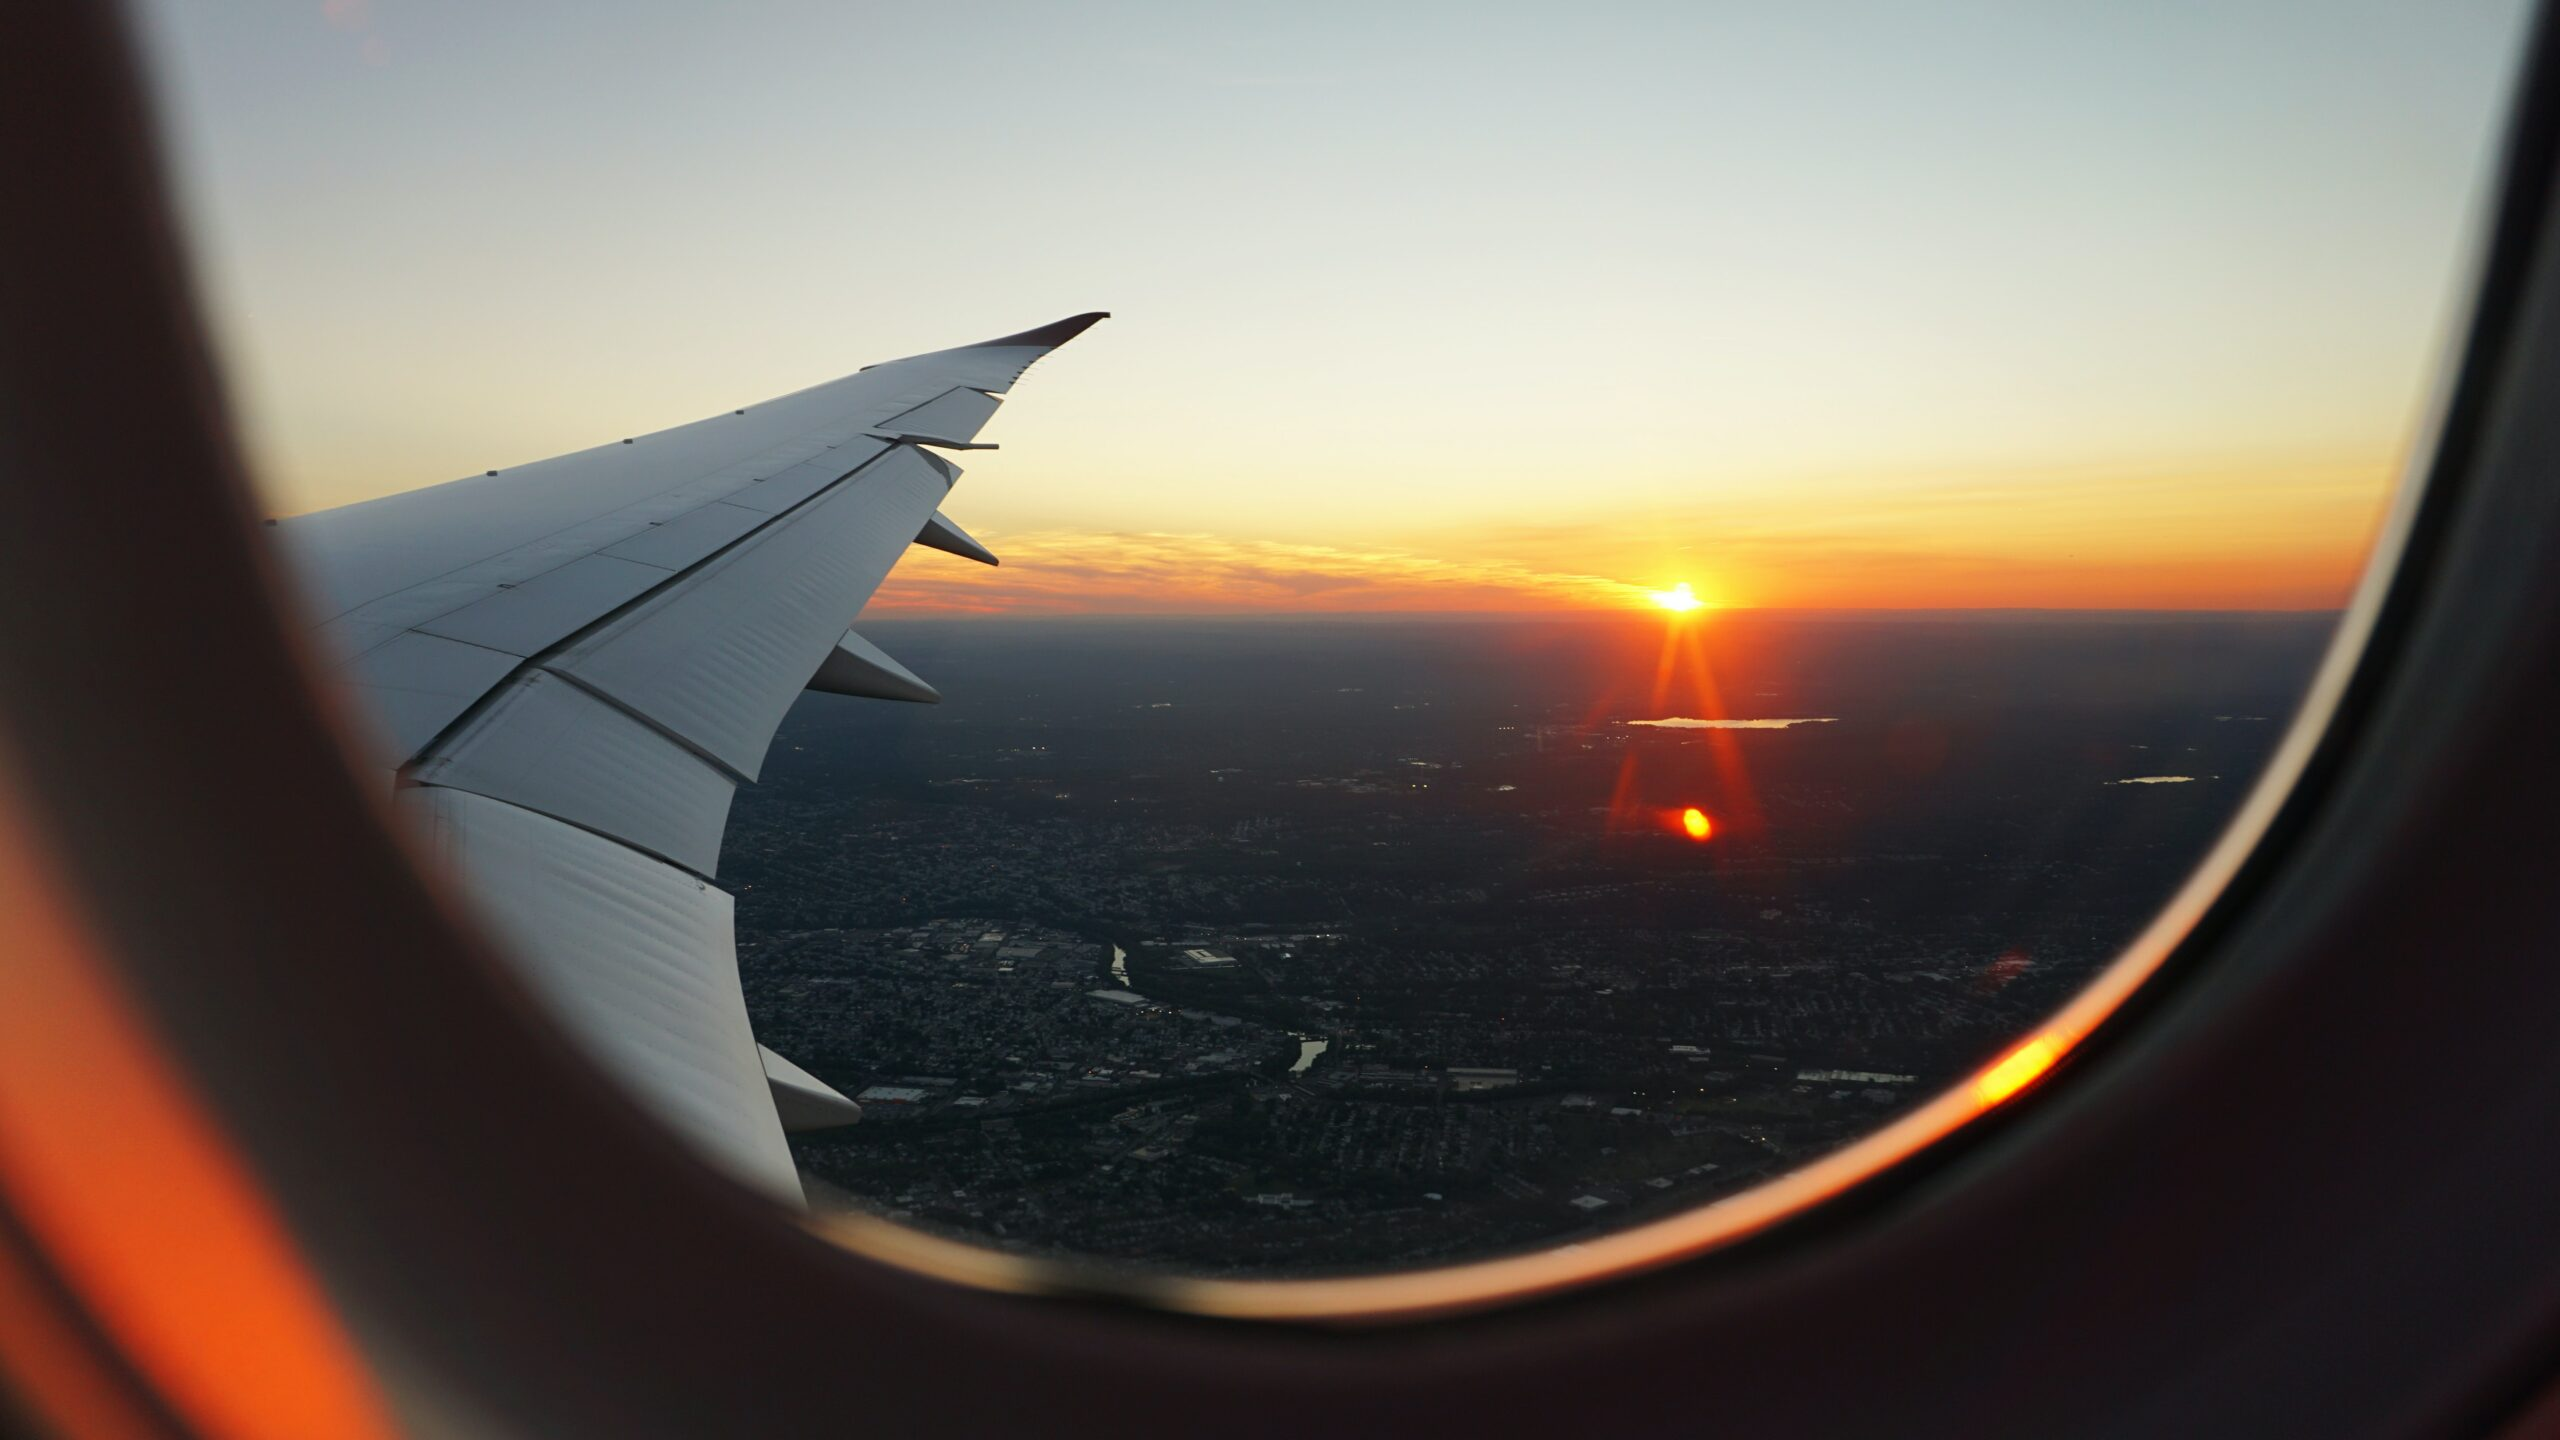 Looking out of an airplane window over the wing tip at a sunrise